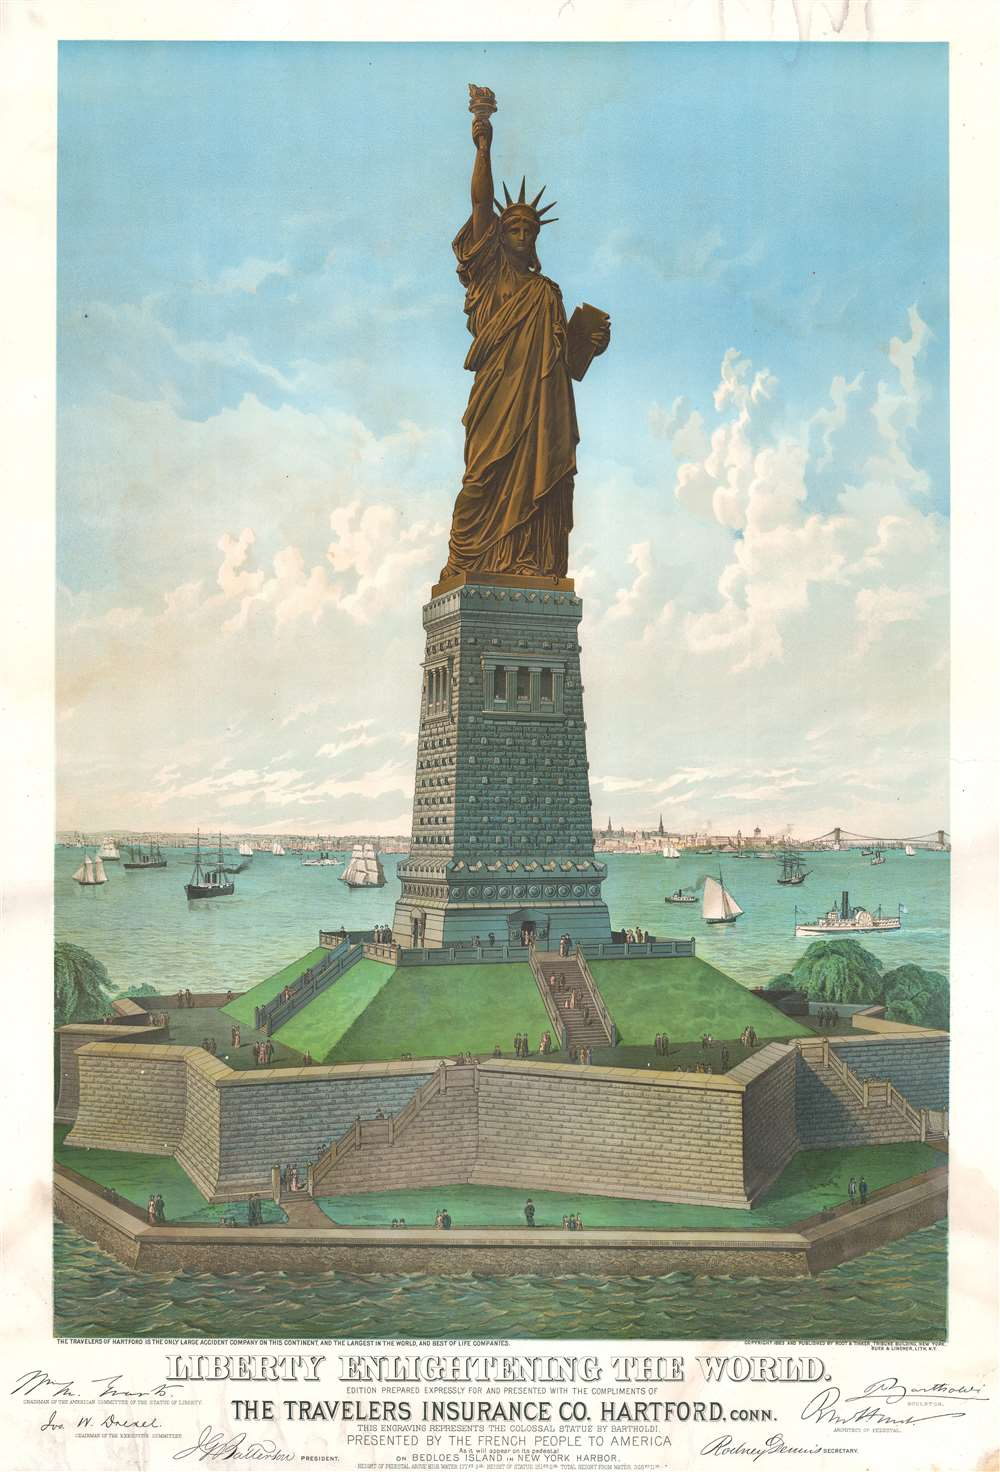 Liberty Enlightening the World. Edition Prepared Expressly for and Presented with the Compliments of Travelers Insurance Co. Hartford, this engraving represents the Clolooal Statue by Bartholdi, Presented by teh French People to America As it will appear on its pedestal on Bedloes Island in New York Harbor. - Main View